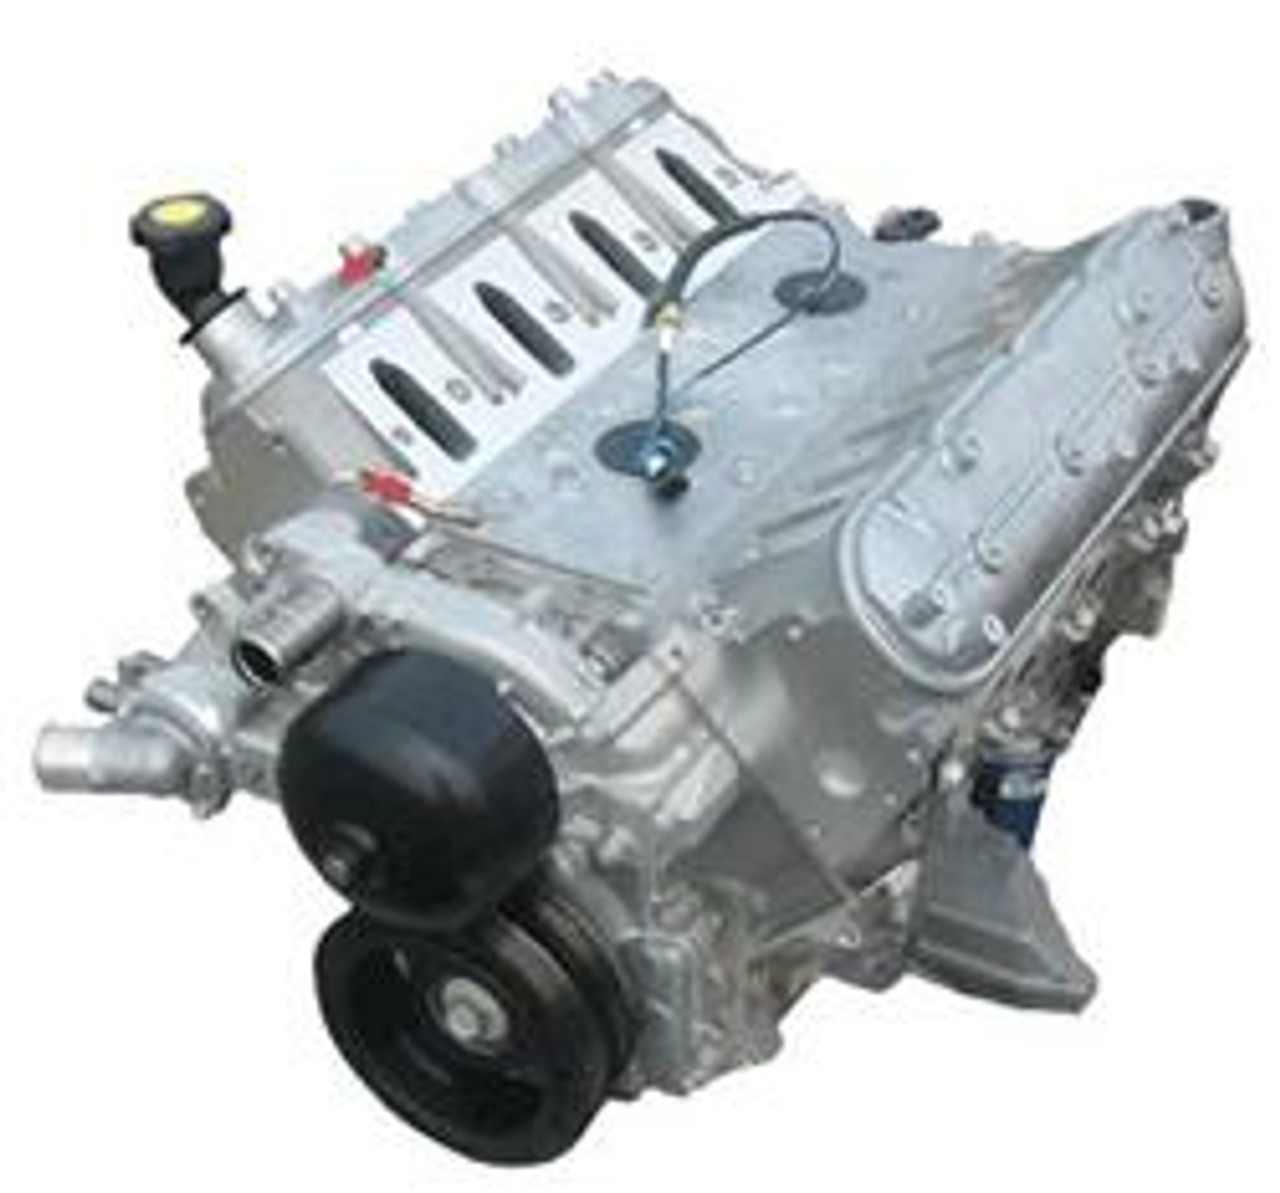 LS1 5.7L Reconditioned Engine | Long Motor